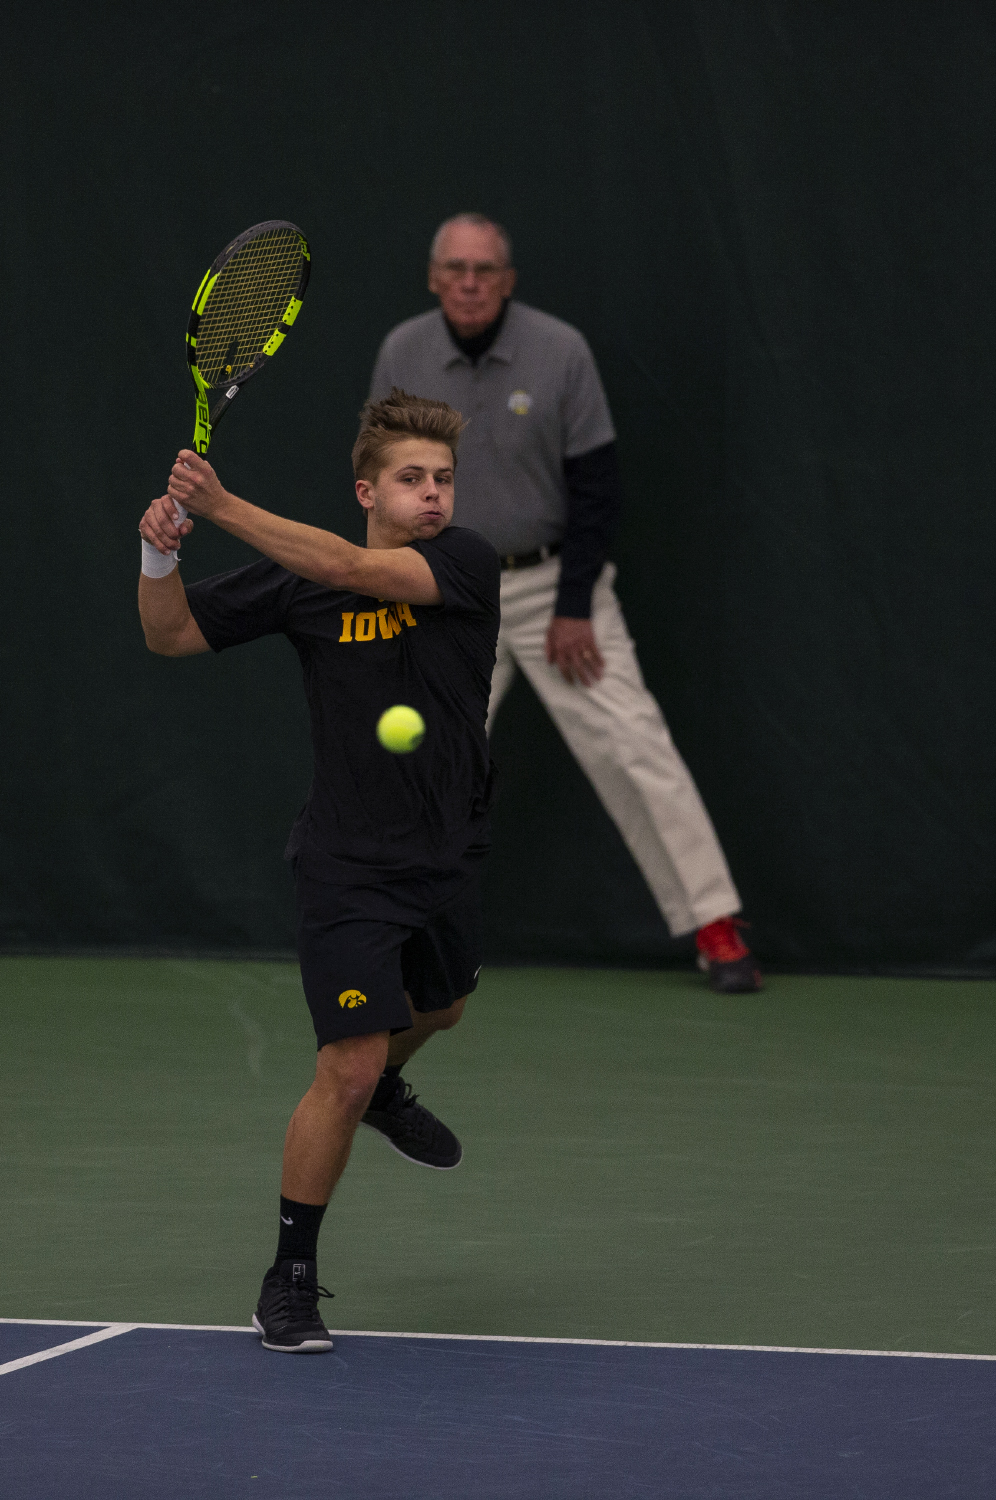 Will+Davies+returns+a+serve+during+the+Men%27s+tennis+match+against+University+of+Miami+at+the+Hawkeye+Tennis+and+Recreation+Complex+on+Feb.+8%2C+2019.+Davies+and+his+partner+Oliver+Okonkwo+defeated+the+Hurricanes+in+their+doubles+match+6-3.+Miami+defeated+Iowa+4-1.+